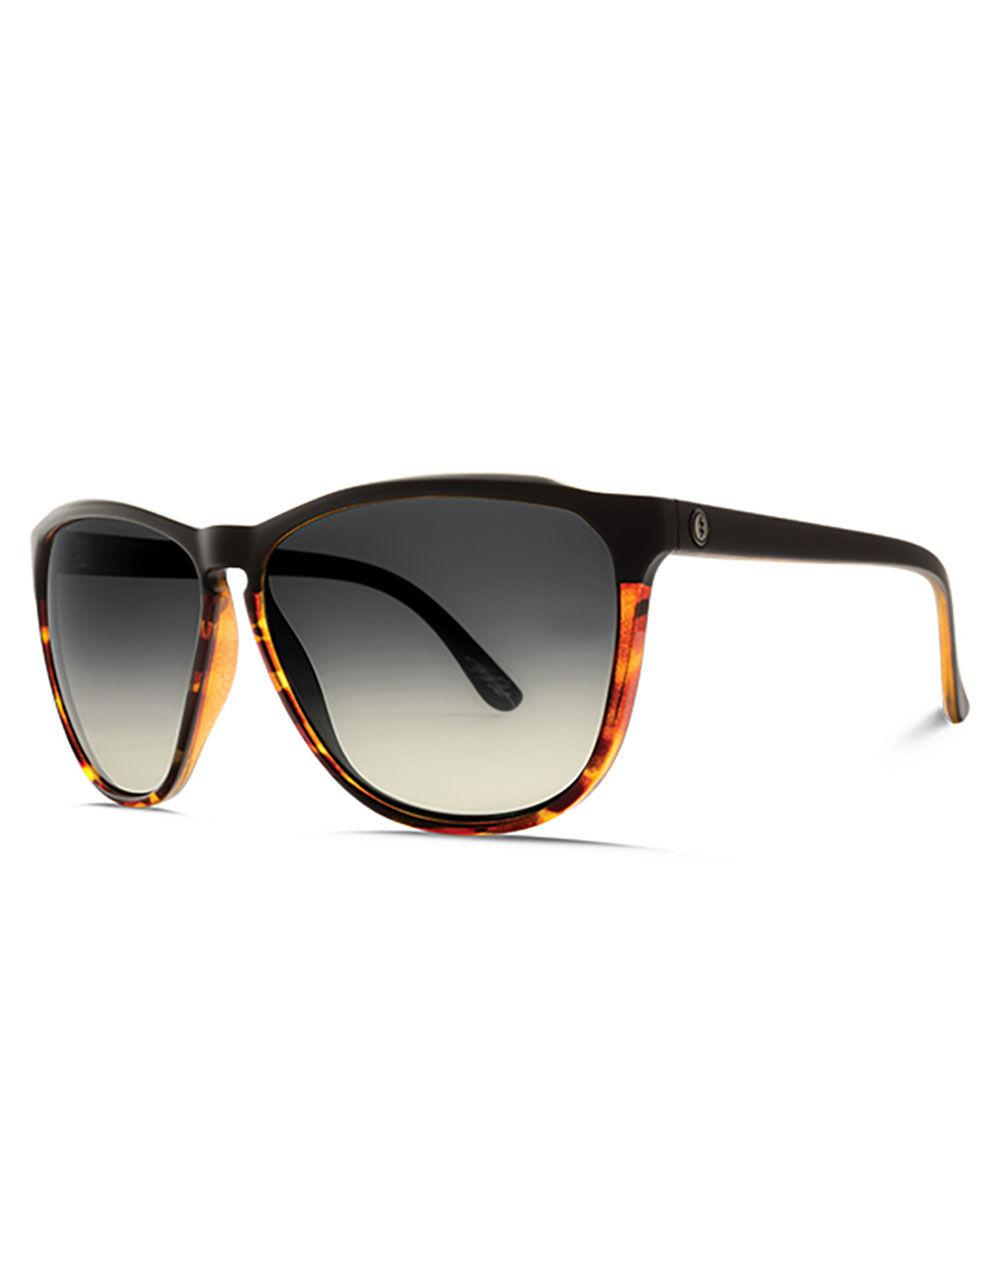 a9b31a68ba5 Lyst - Electric Encelia Sunglasses in Brown